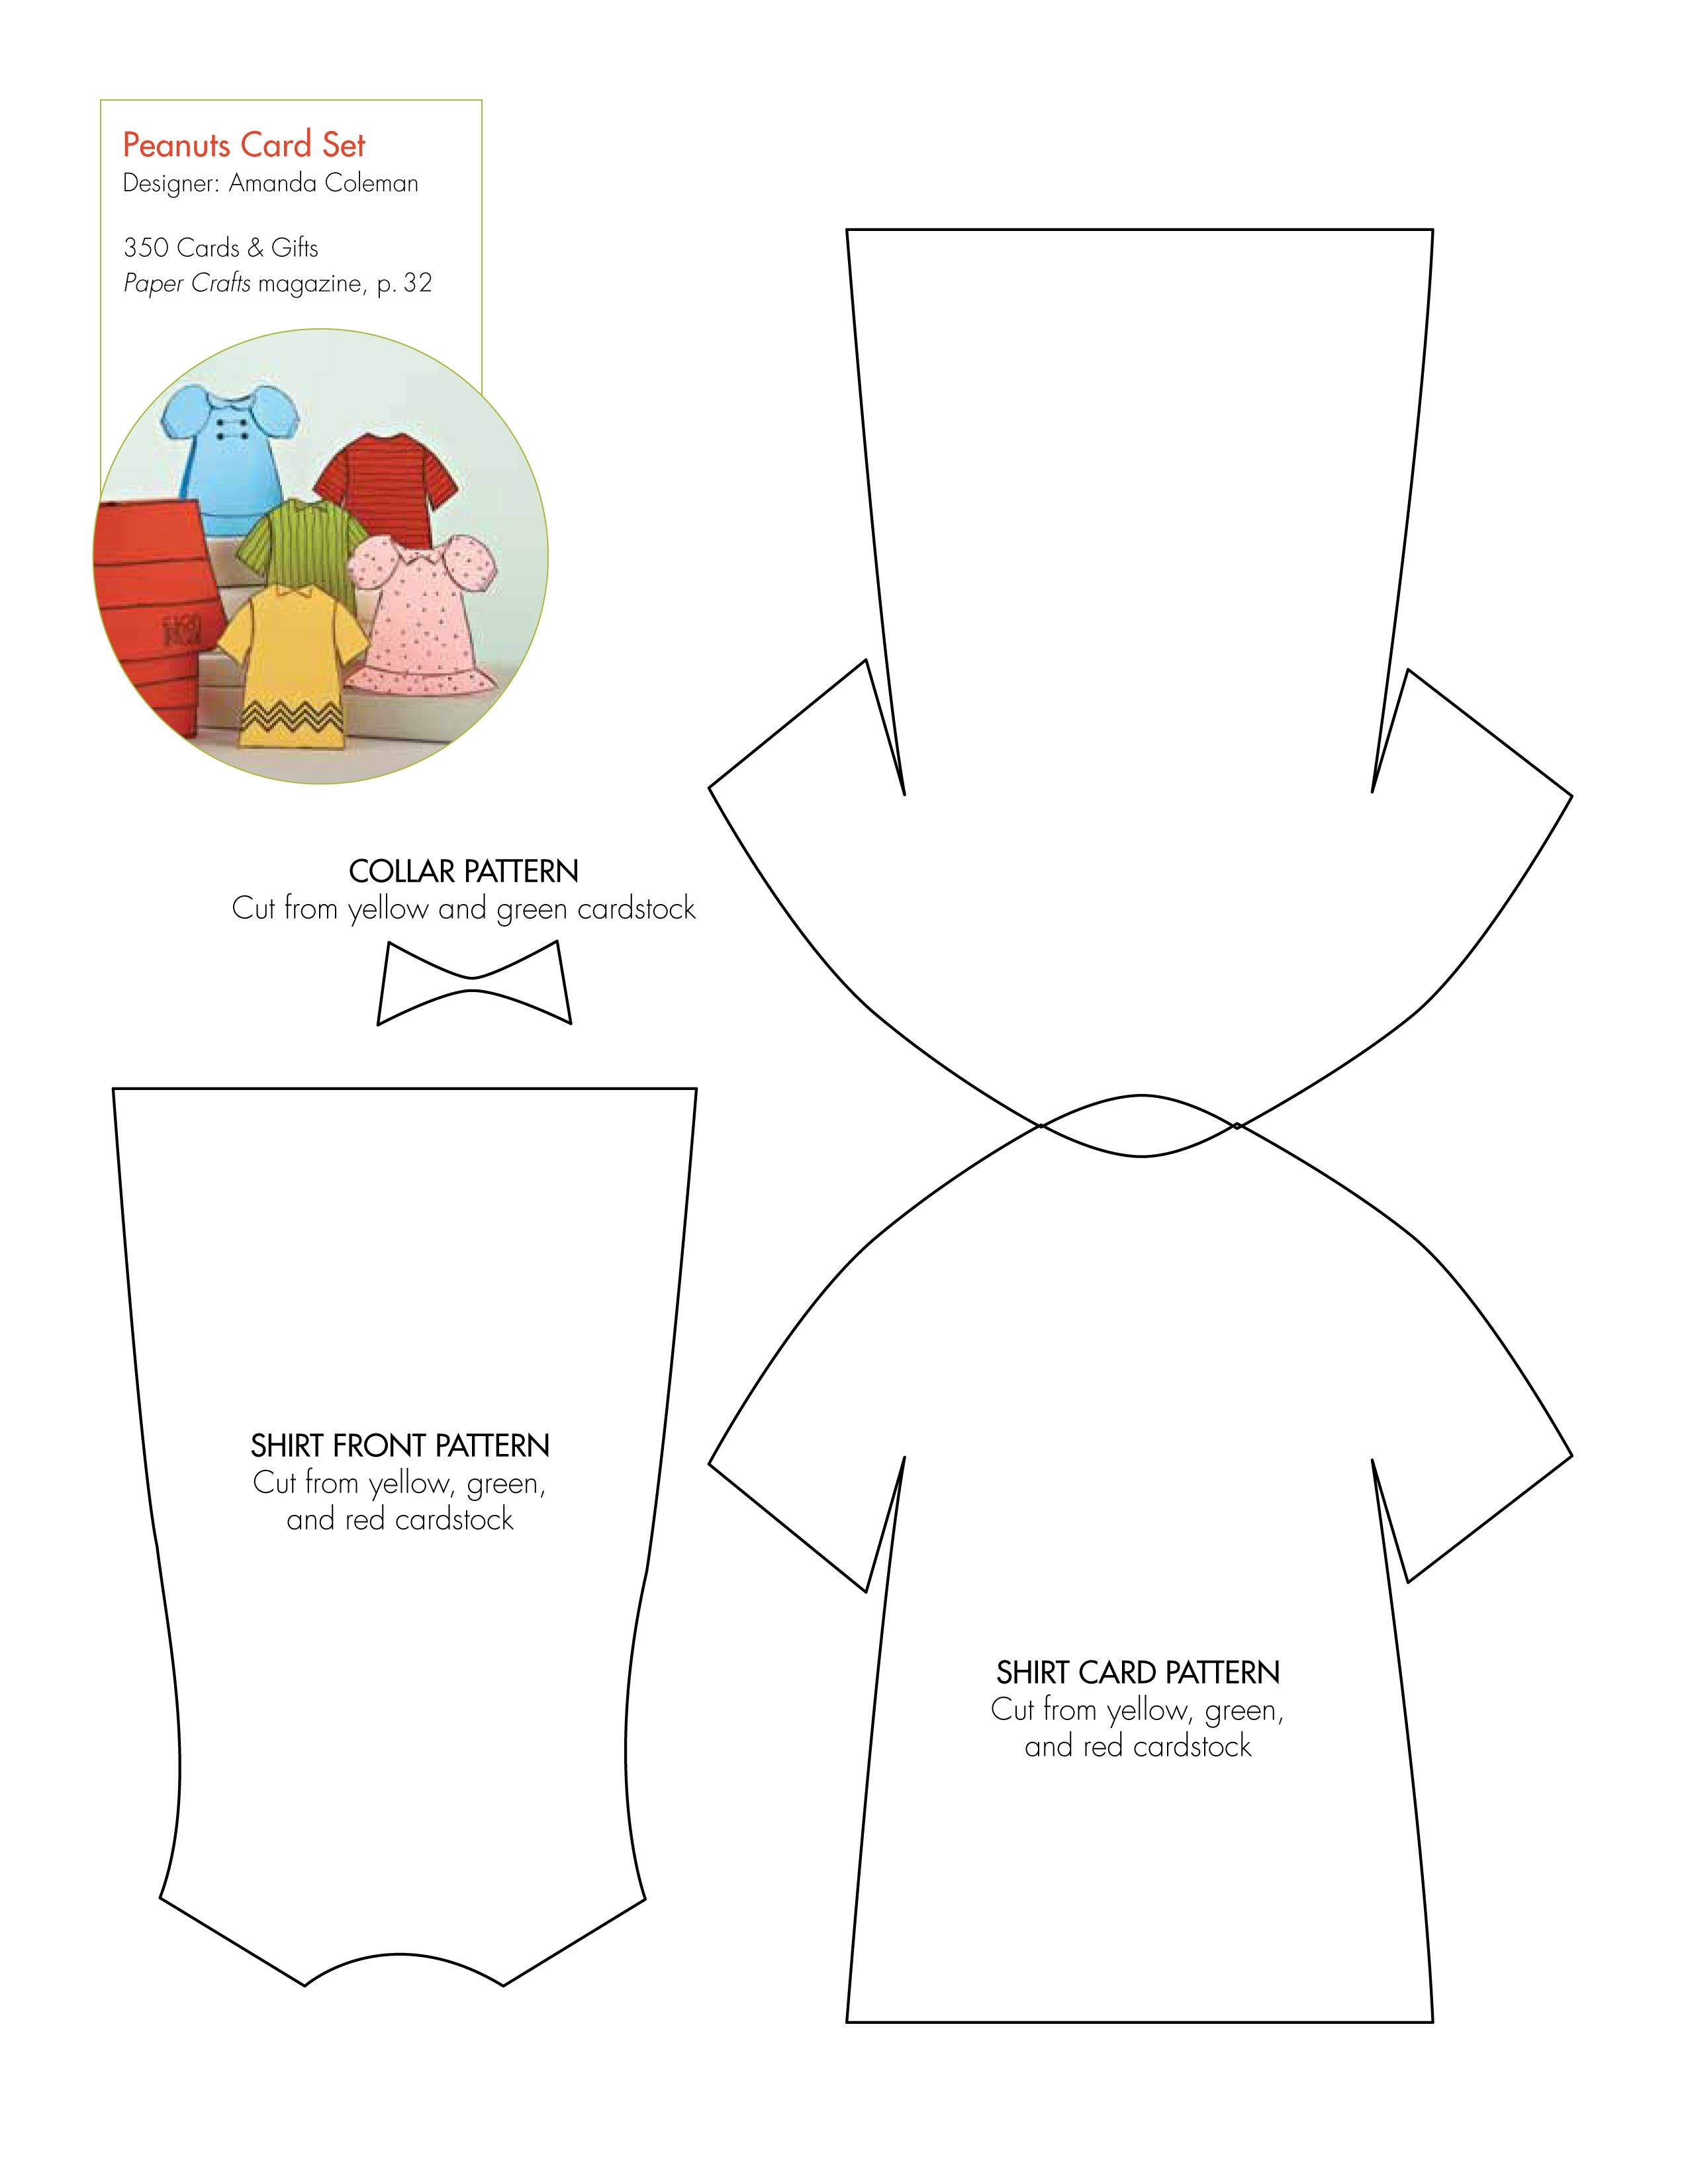 Free templates for a Peanuts card set: http://www.papercraftsmag.com ...